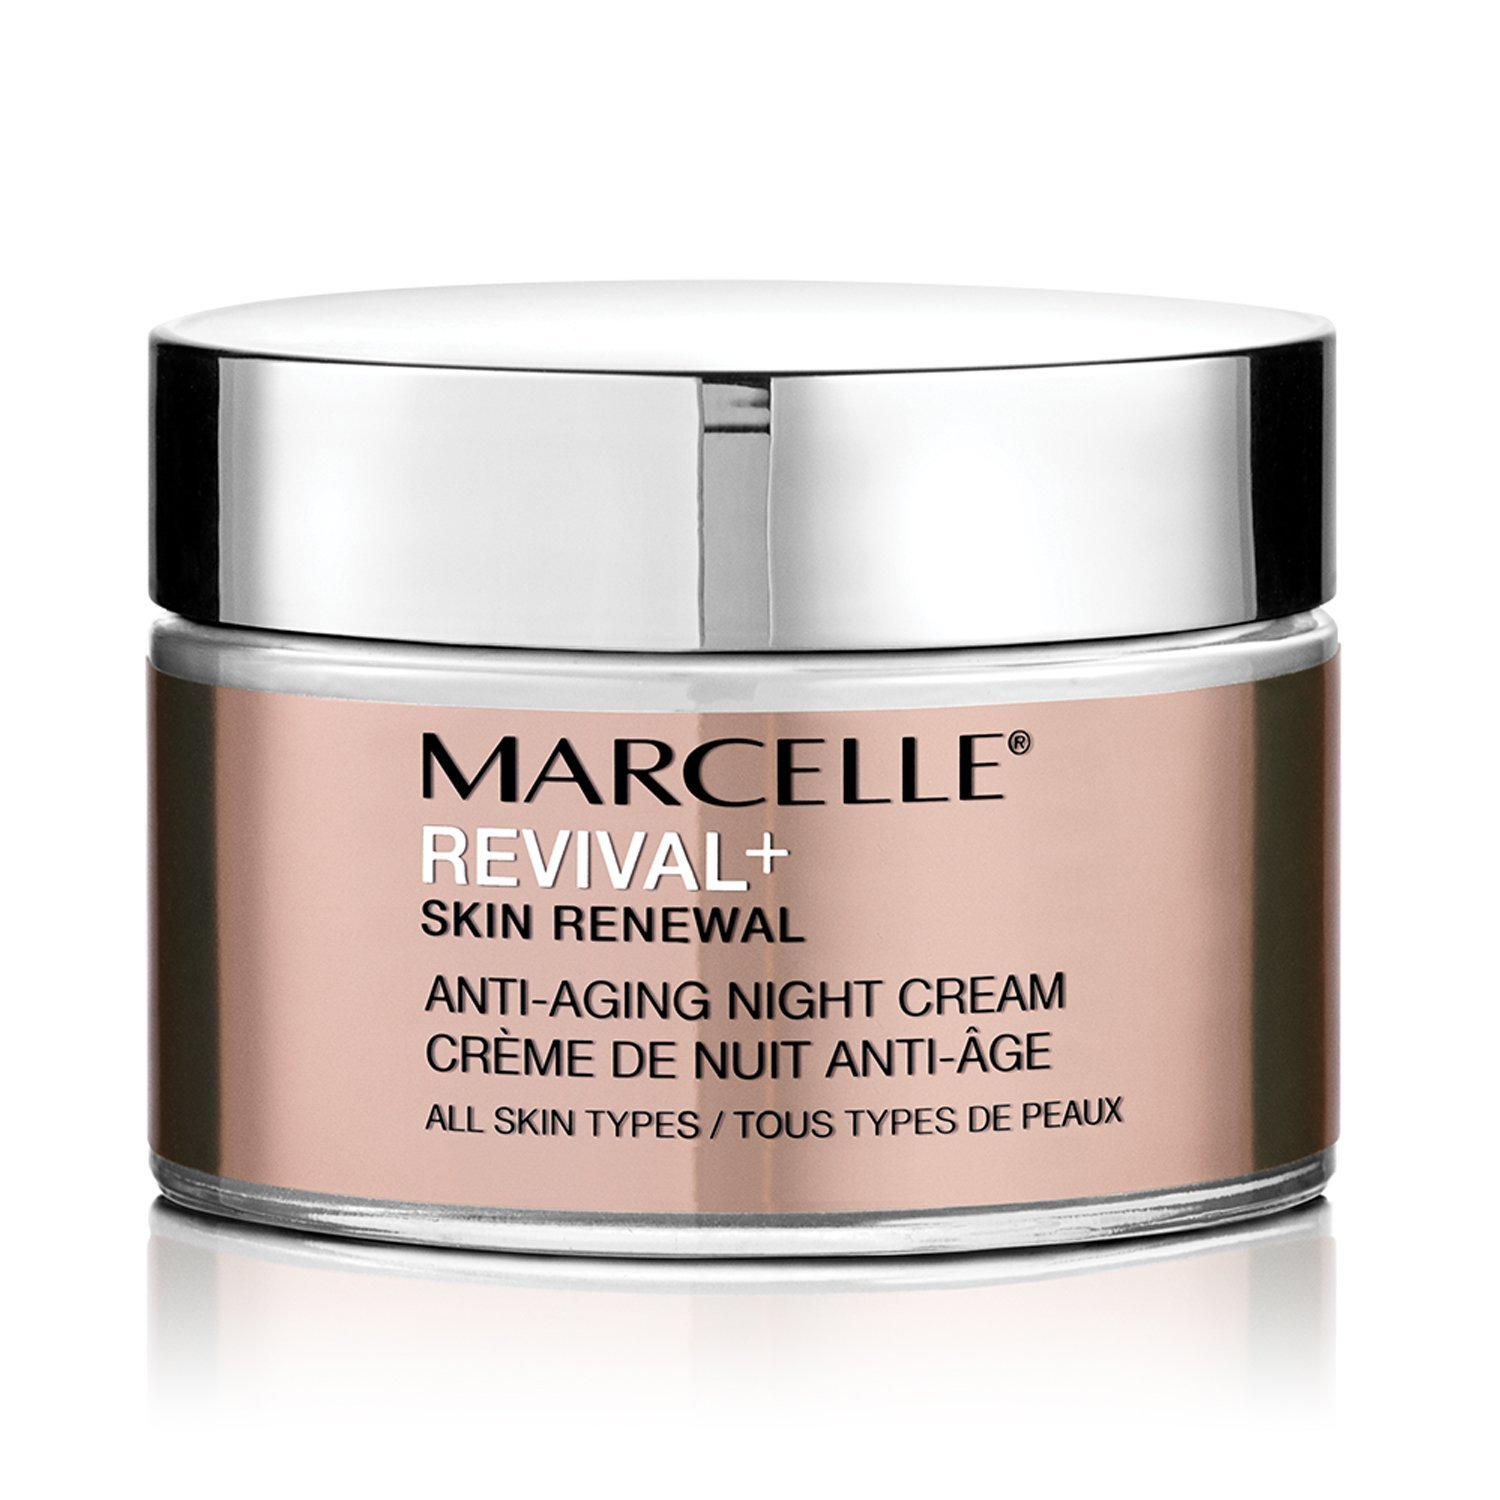 Marcelle Revival+ Skin Renewal Anti-Aging Night Cream, Hypoallergenic and Fragrance-Free, 50 mL Marcelle group - Beauty